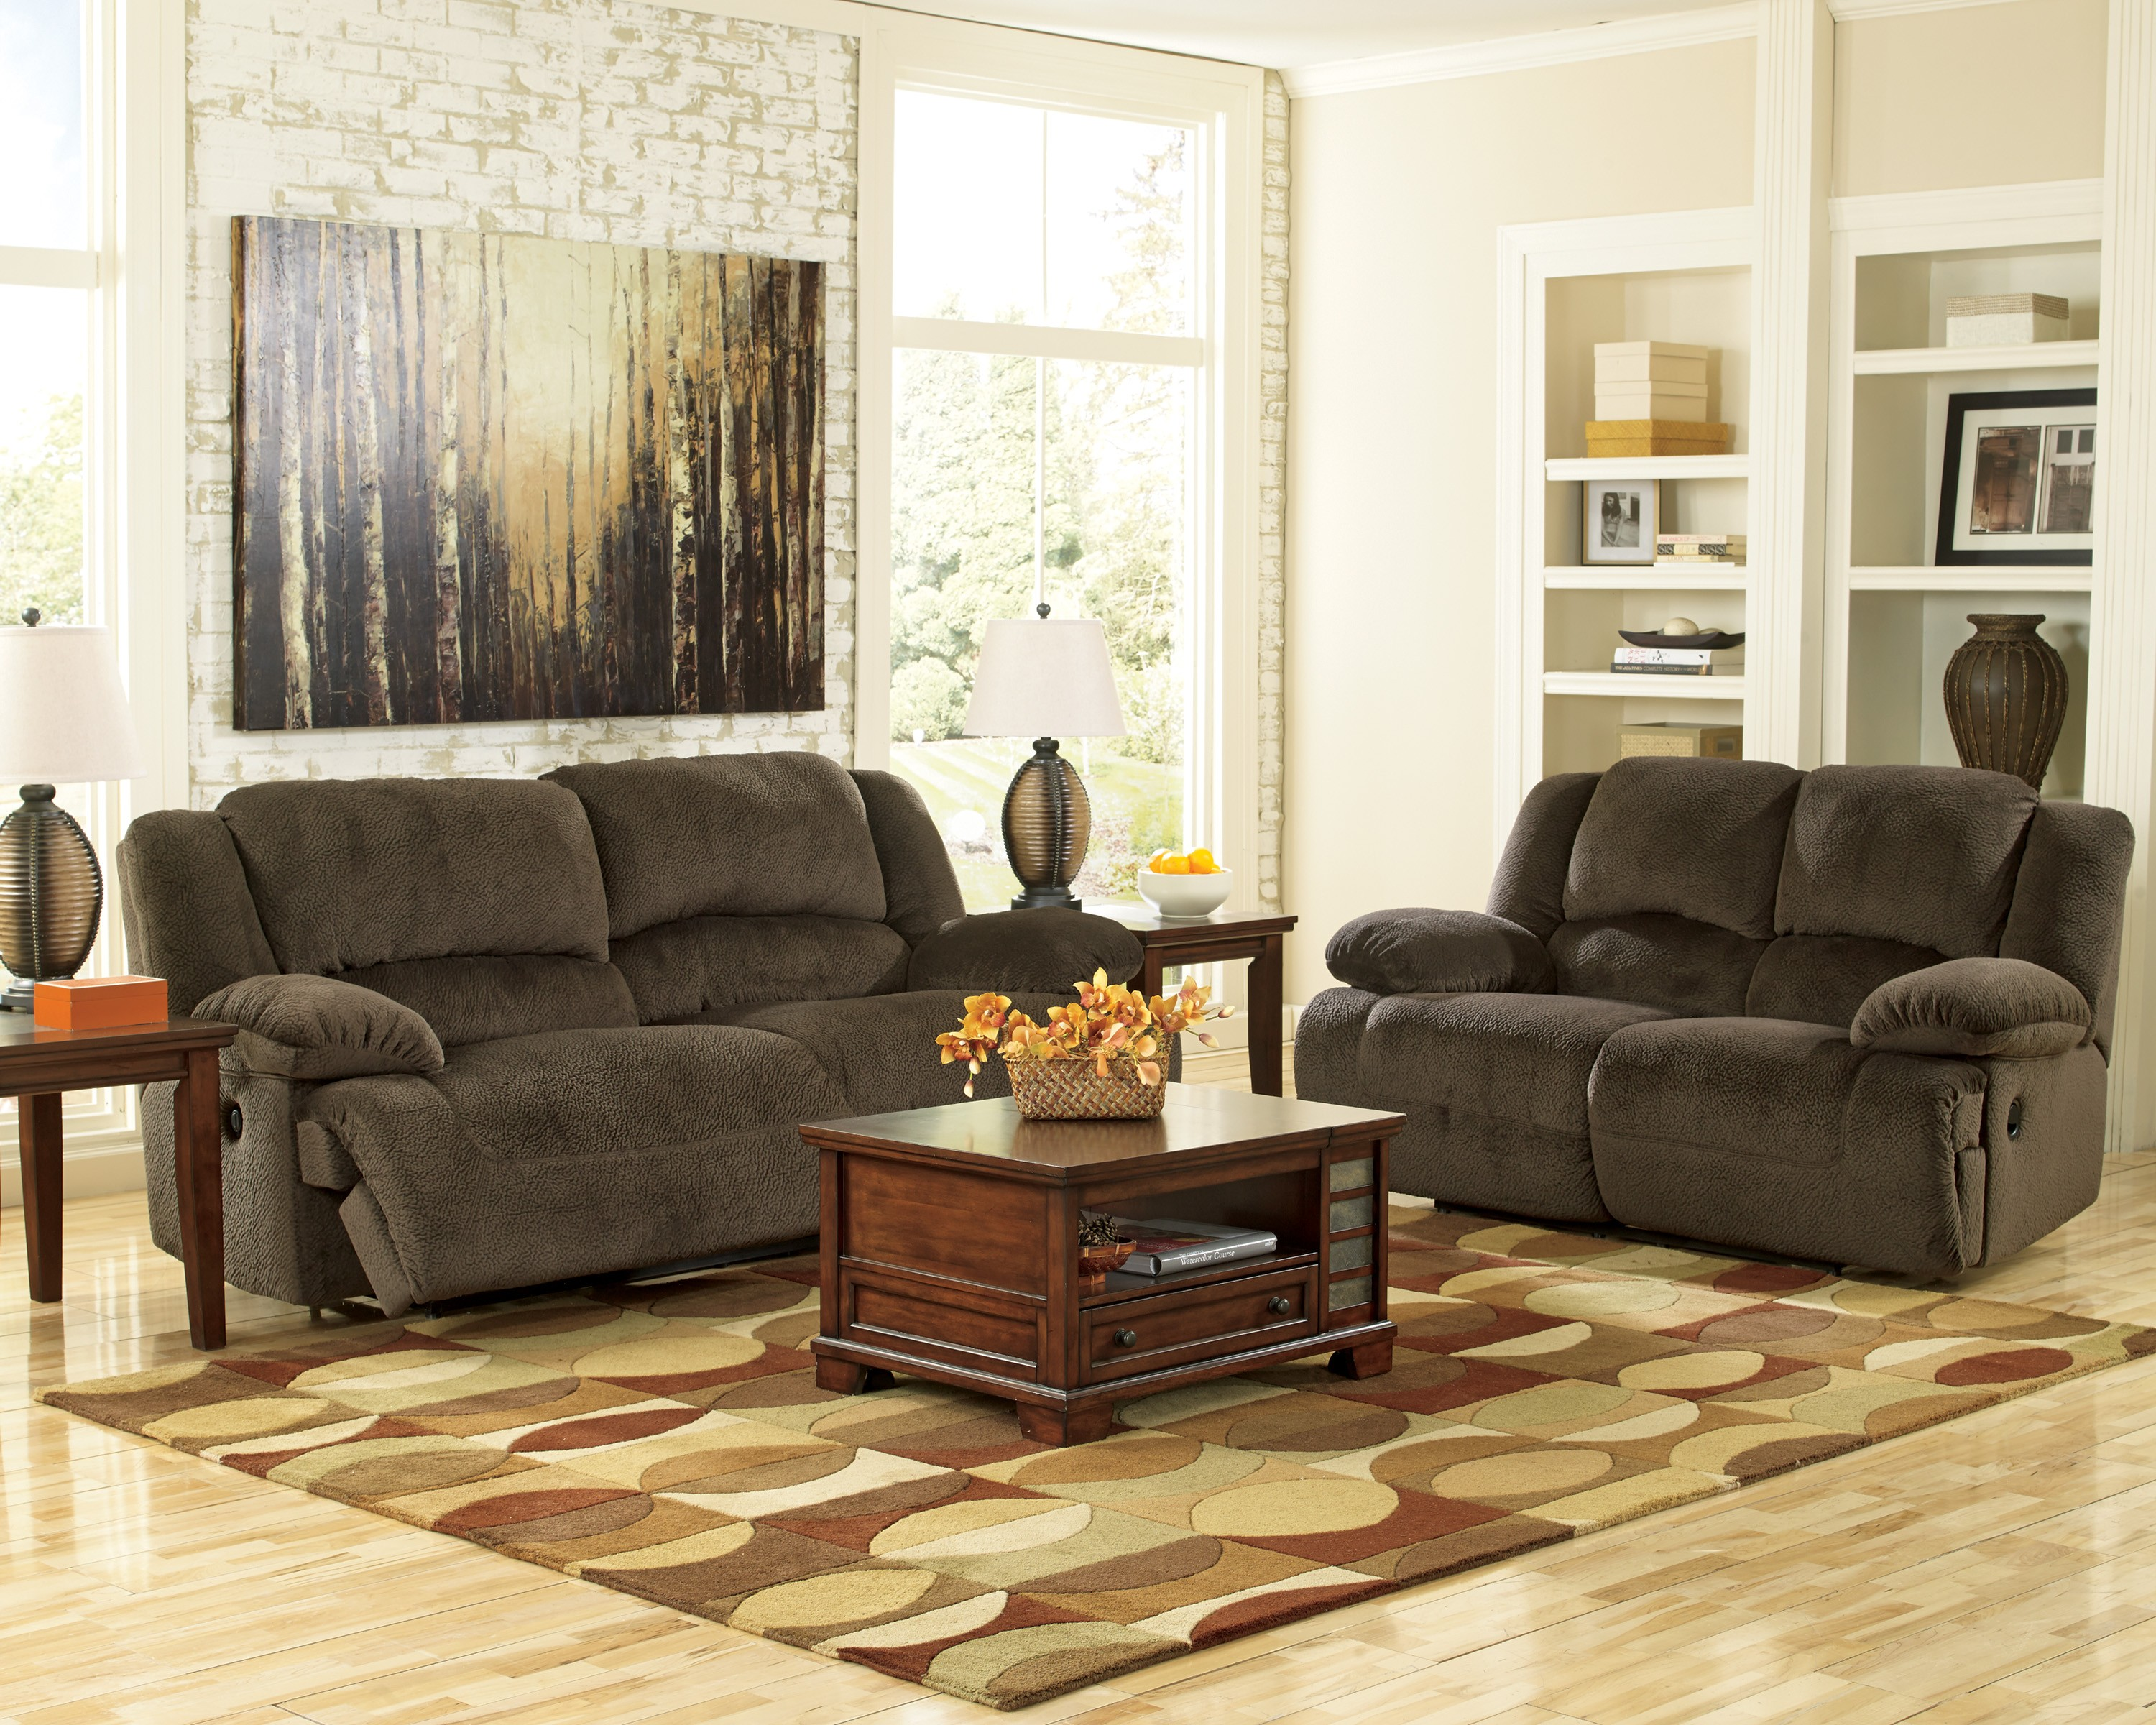 Toletta Chocolate Living Room Set from Ashley (5670181-86) | Coleman ...